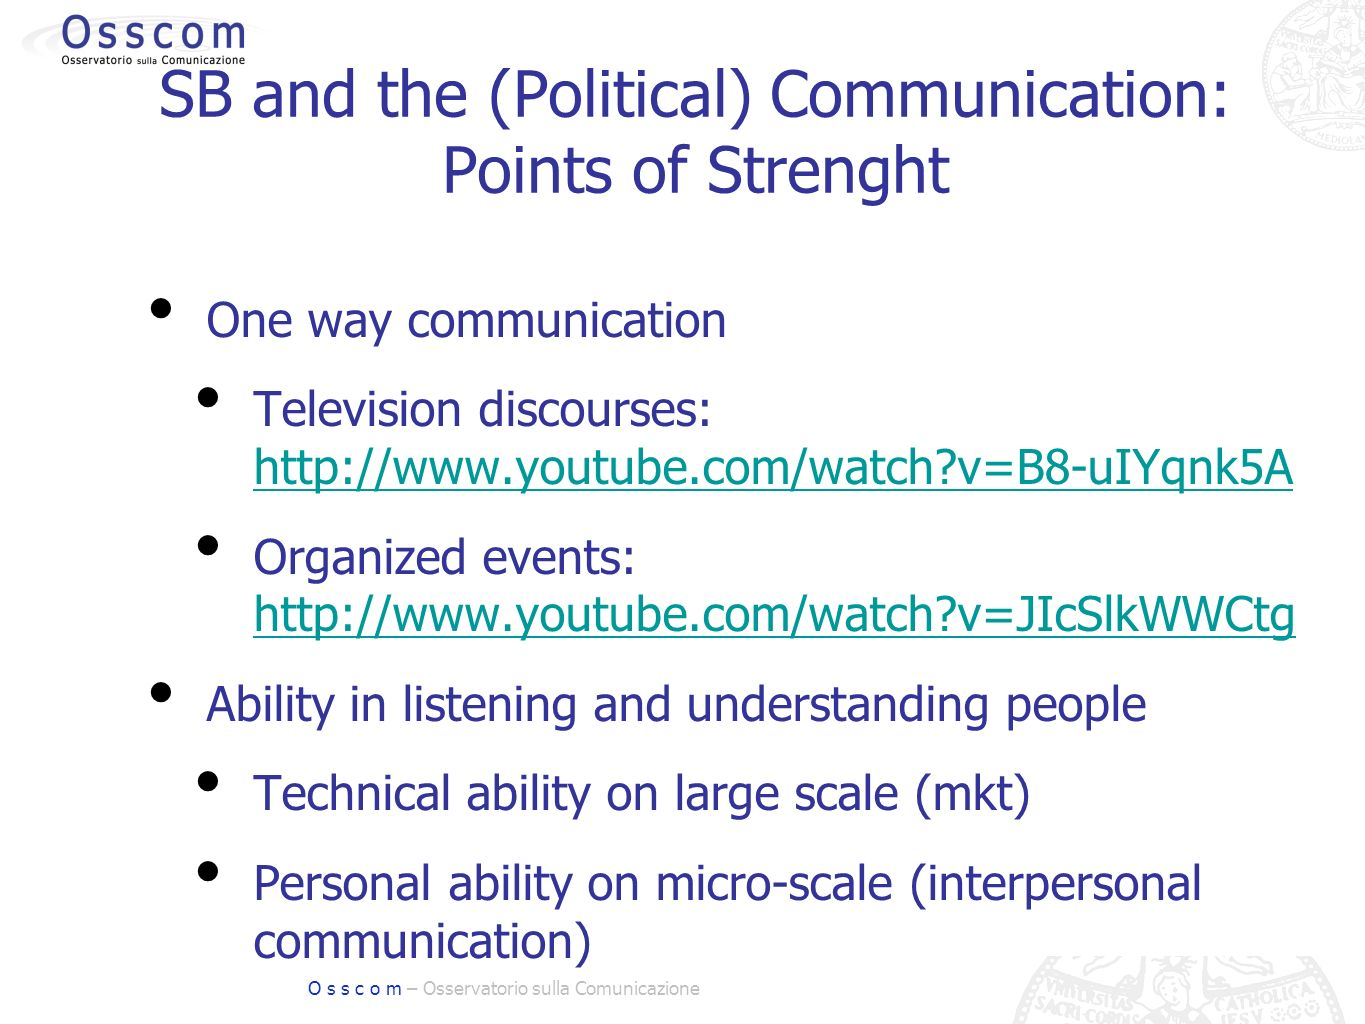 O s s c o m – Osservatorio sulla Comunicazione SB and the (Political) Communication: Points of Strenght One way communication Television discourses:   v=B8-uIYqnk5A   v=B8-uIYqnk5A Organized events:   v=JIcSlkWWCtg   v=JIcSlkWWCtg Ability in listening and understanding people Technical ability on large scale (mkt) Personal ability on micro-scale (interpersonal communication)